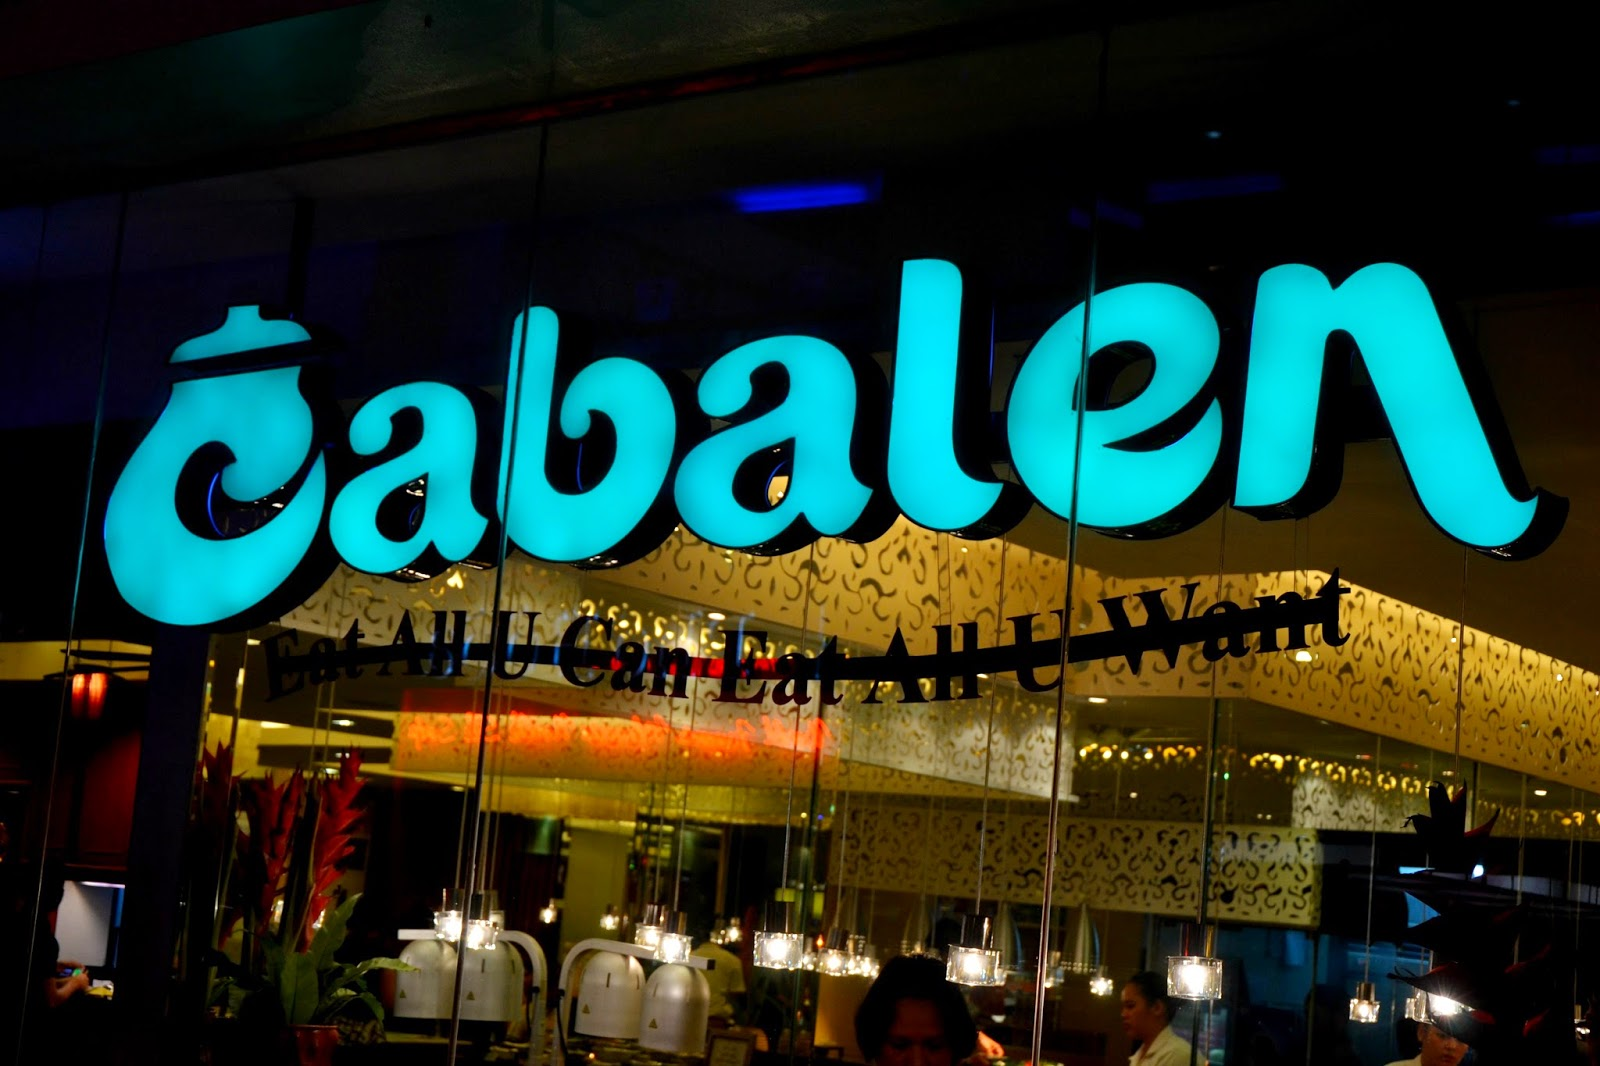 cabalen restaurant Cabalen restaurant is one of the country's well-known eat-all you can buffet restaurant offering regional cuisines and filipino-asian cuisines cabalen which literally translates to a fellow.